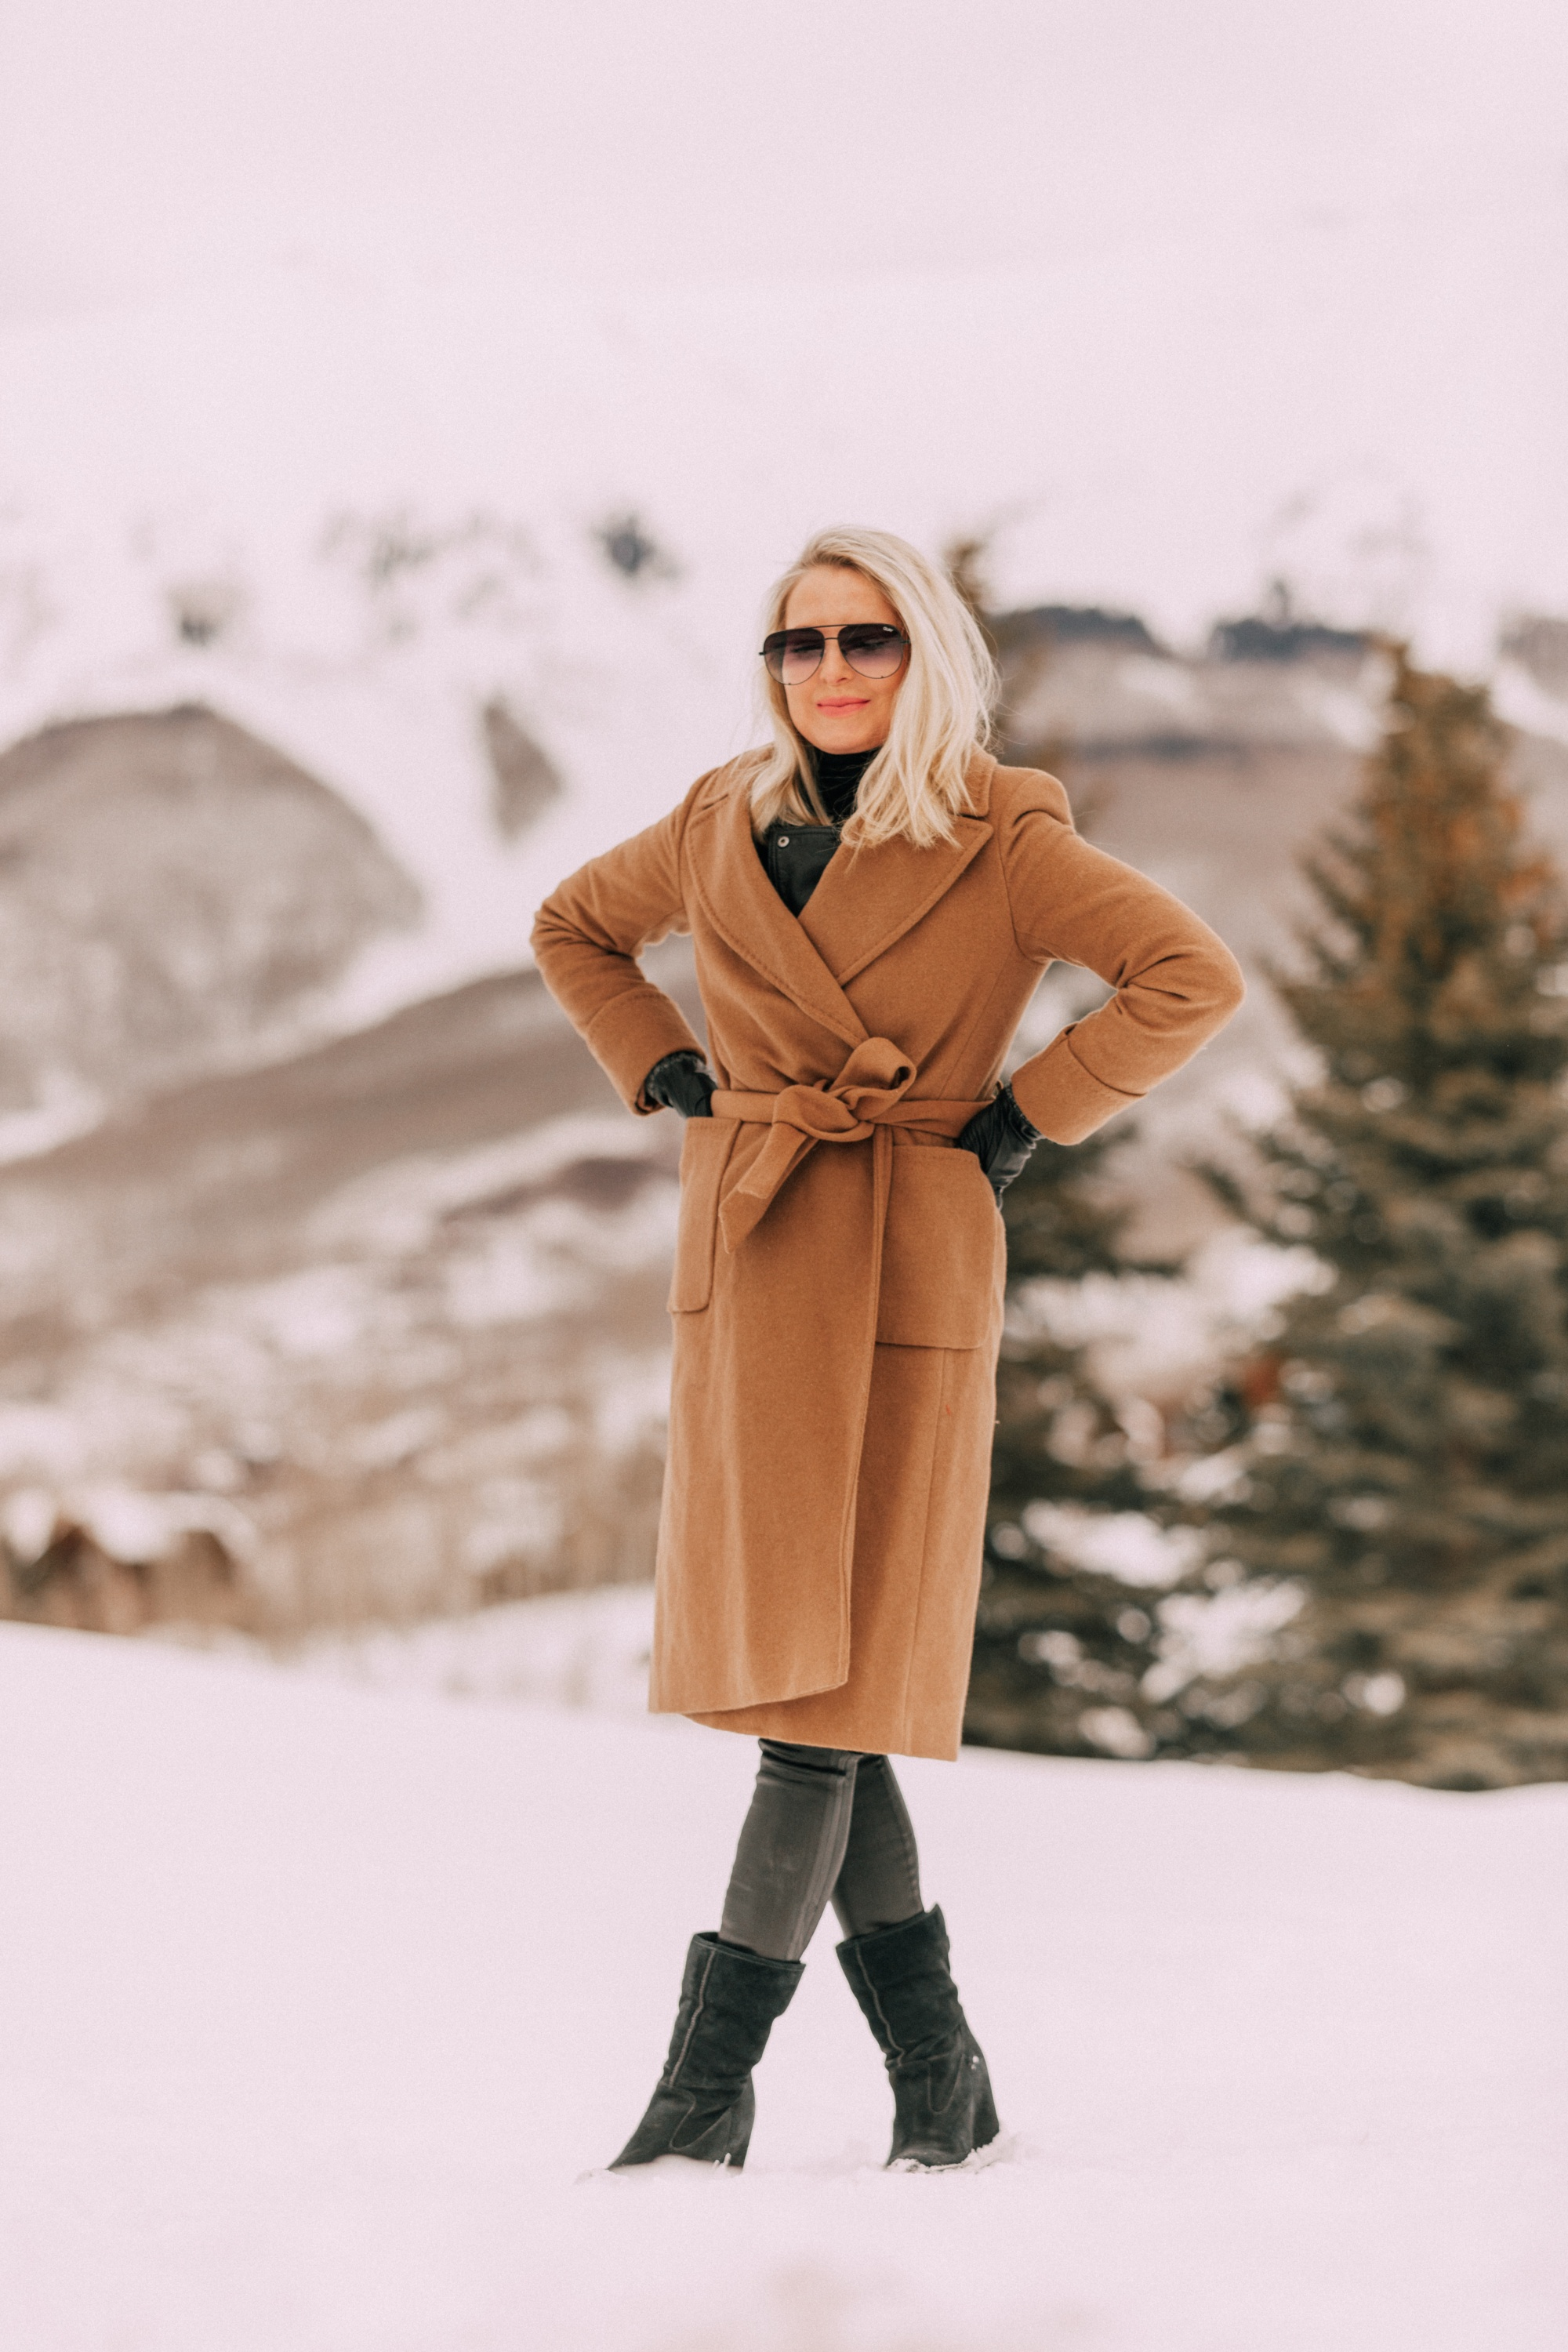 How To Layer A Moto Jacket, Fashion blogger Erin Busbee of BusbeeStyle.com wearing a black leather IRO moto jacket, Carolina Amato gloves, rocket leatherette skinny jeans by Citizens of Humanity, black cashmere turtleneck, Ugg wedge boots, and a wool camel coat by Mackage in Telluride, CO